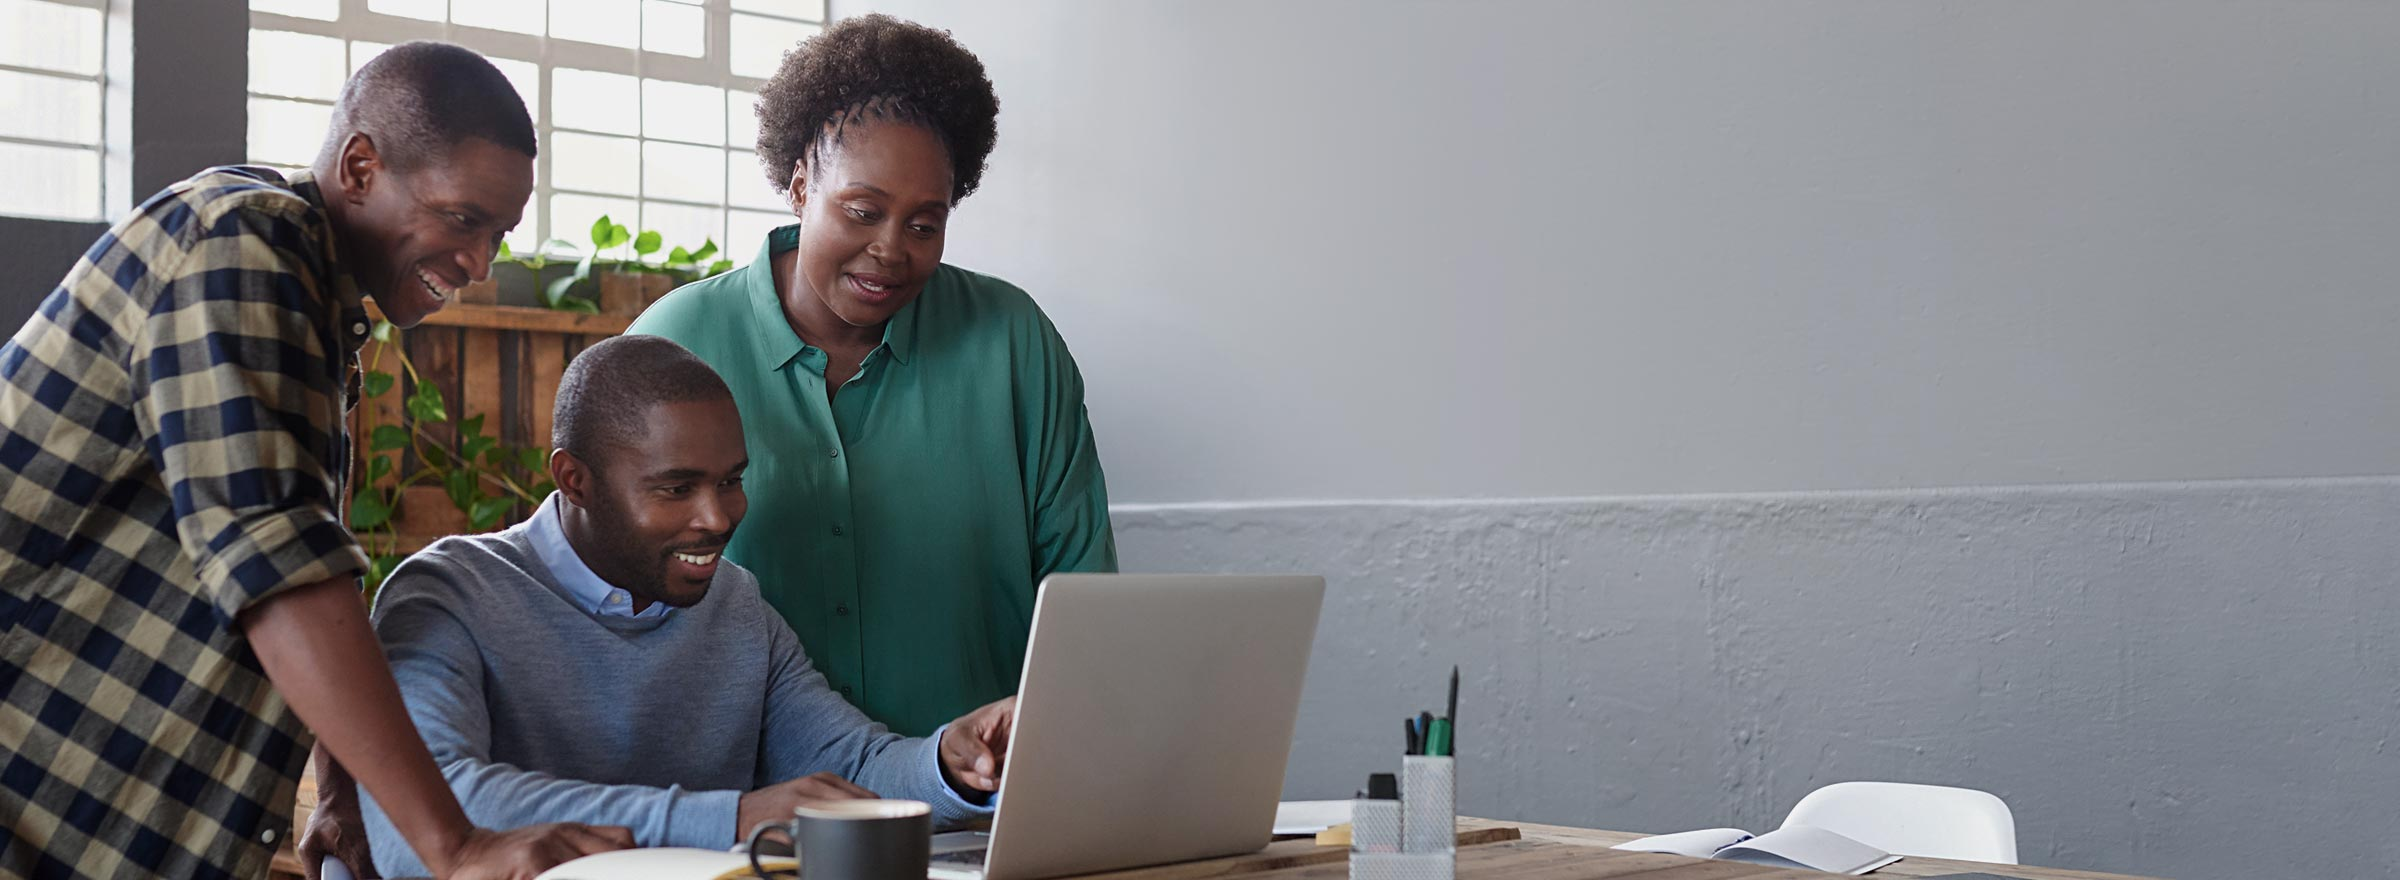 three African American people looking at a laptop together and smiling